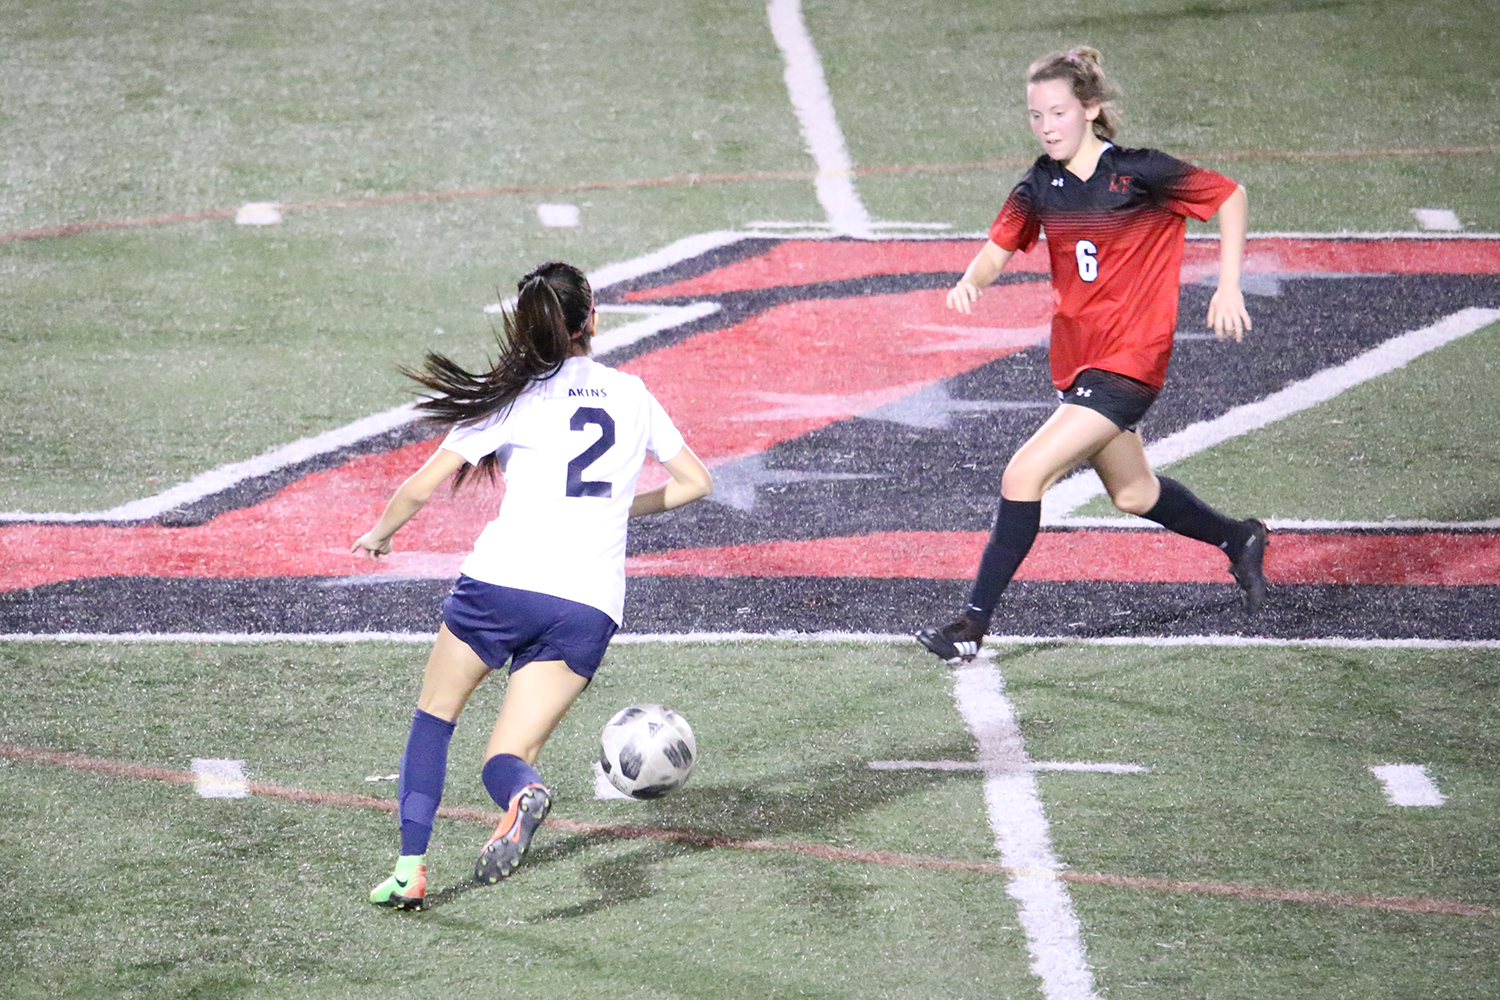 Sophomore Alex Castillo dribbles the ball on the field against their opponent Lake Travis, which defeated Akins 10-0. Coach Le'Von Griffin said he is looking for the team to make improvements that the players can make from game to game.